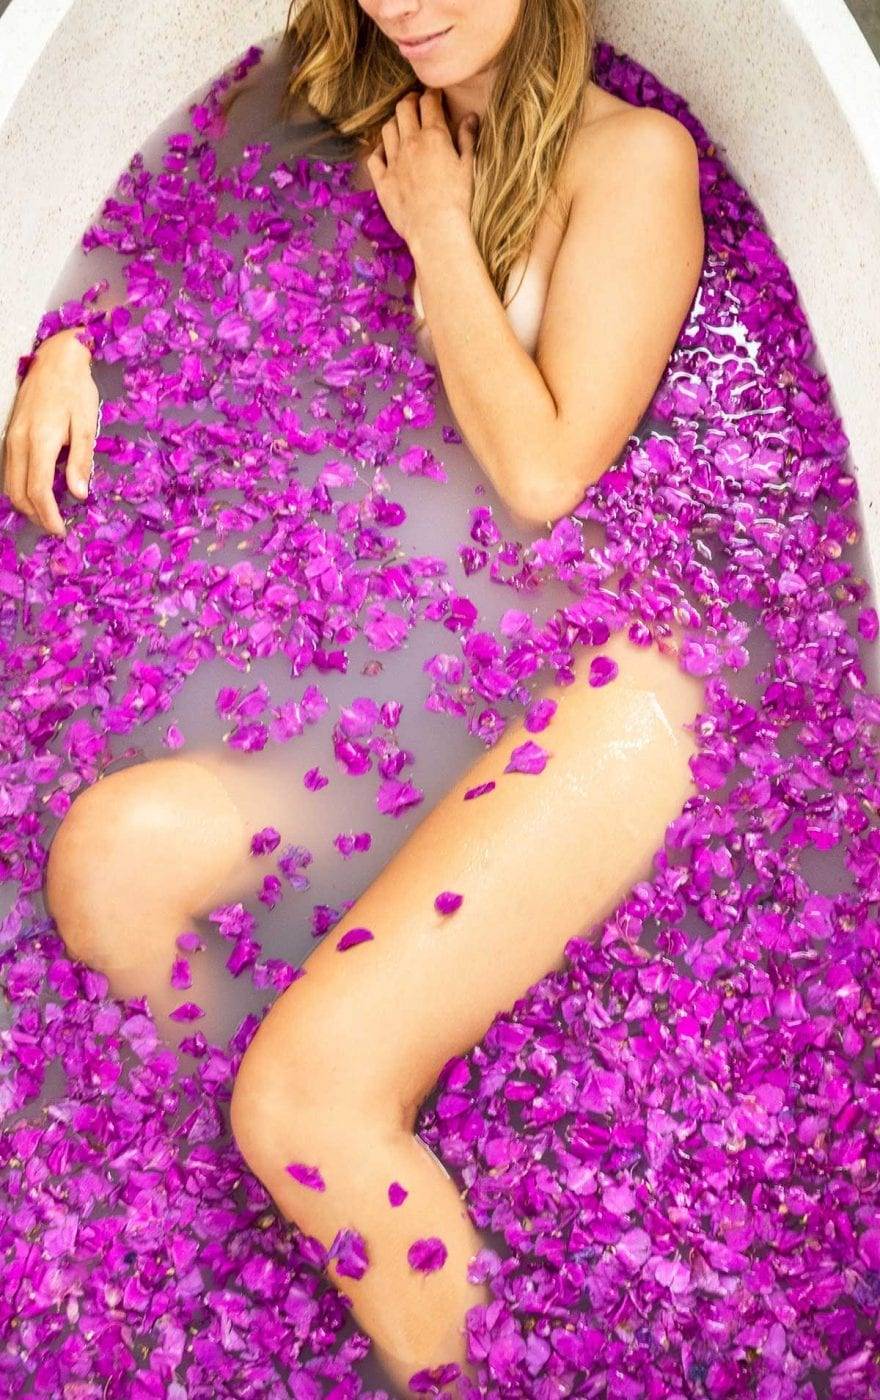 Woman relaxing in flower bath at Bali wellness retreat